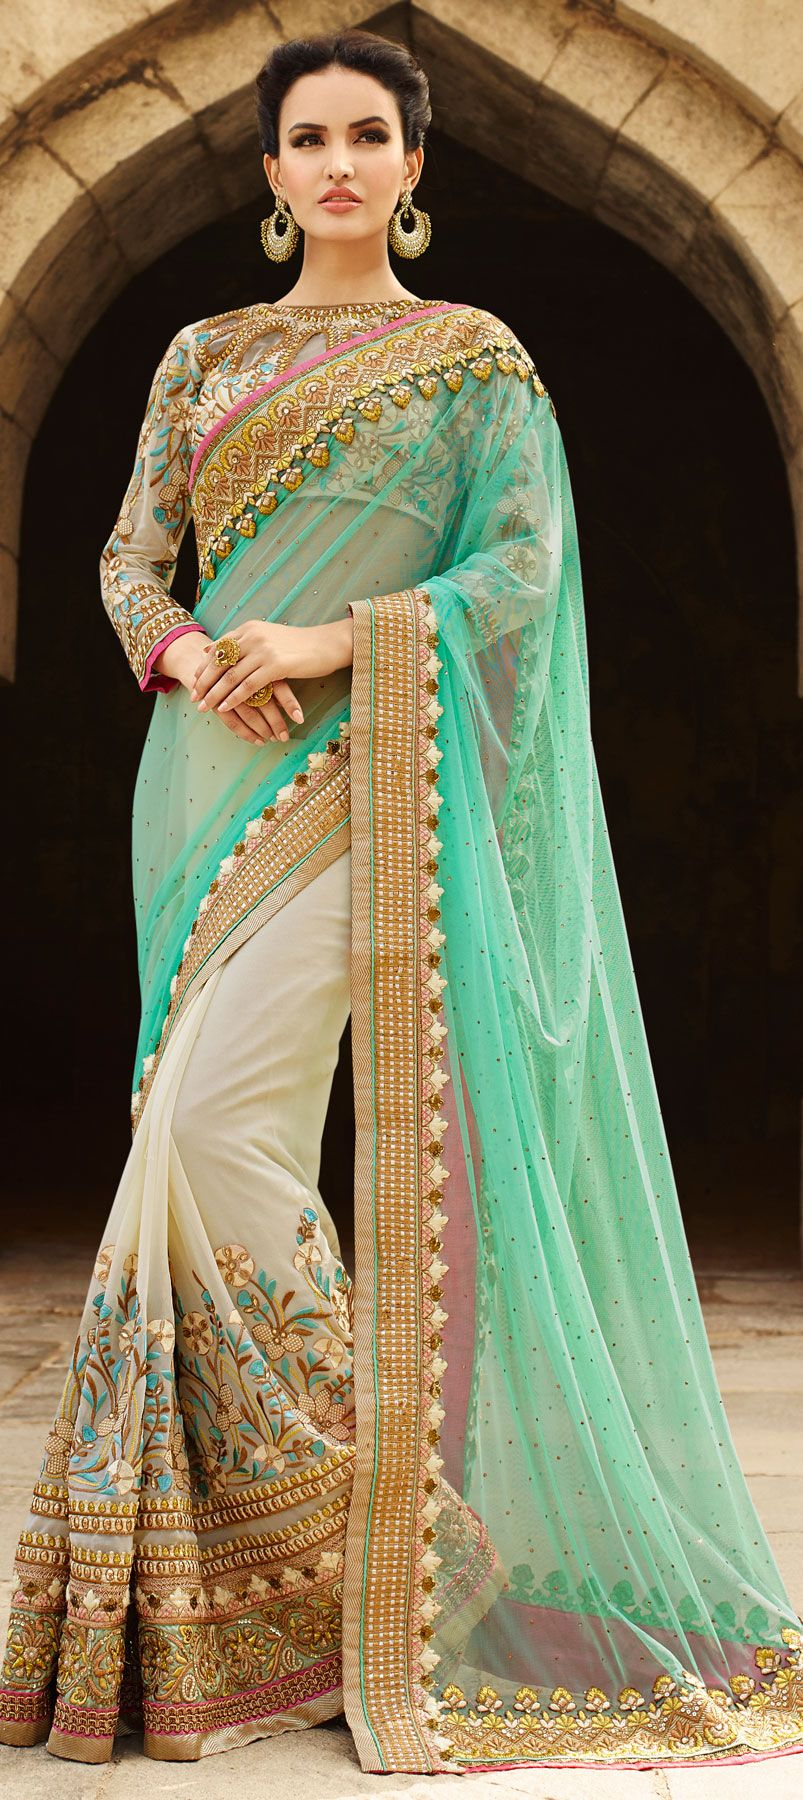 Photo of 180739: Beige and Brown,Green  color family Bridal Wedding Sarees   with matching unstitched blouse.